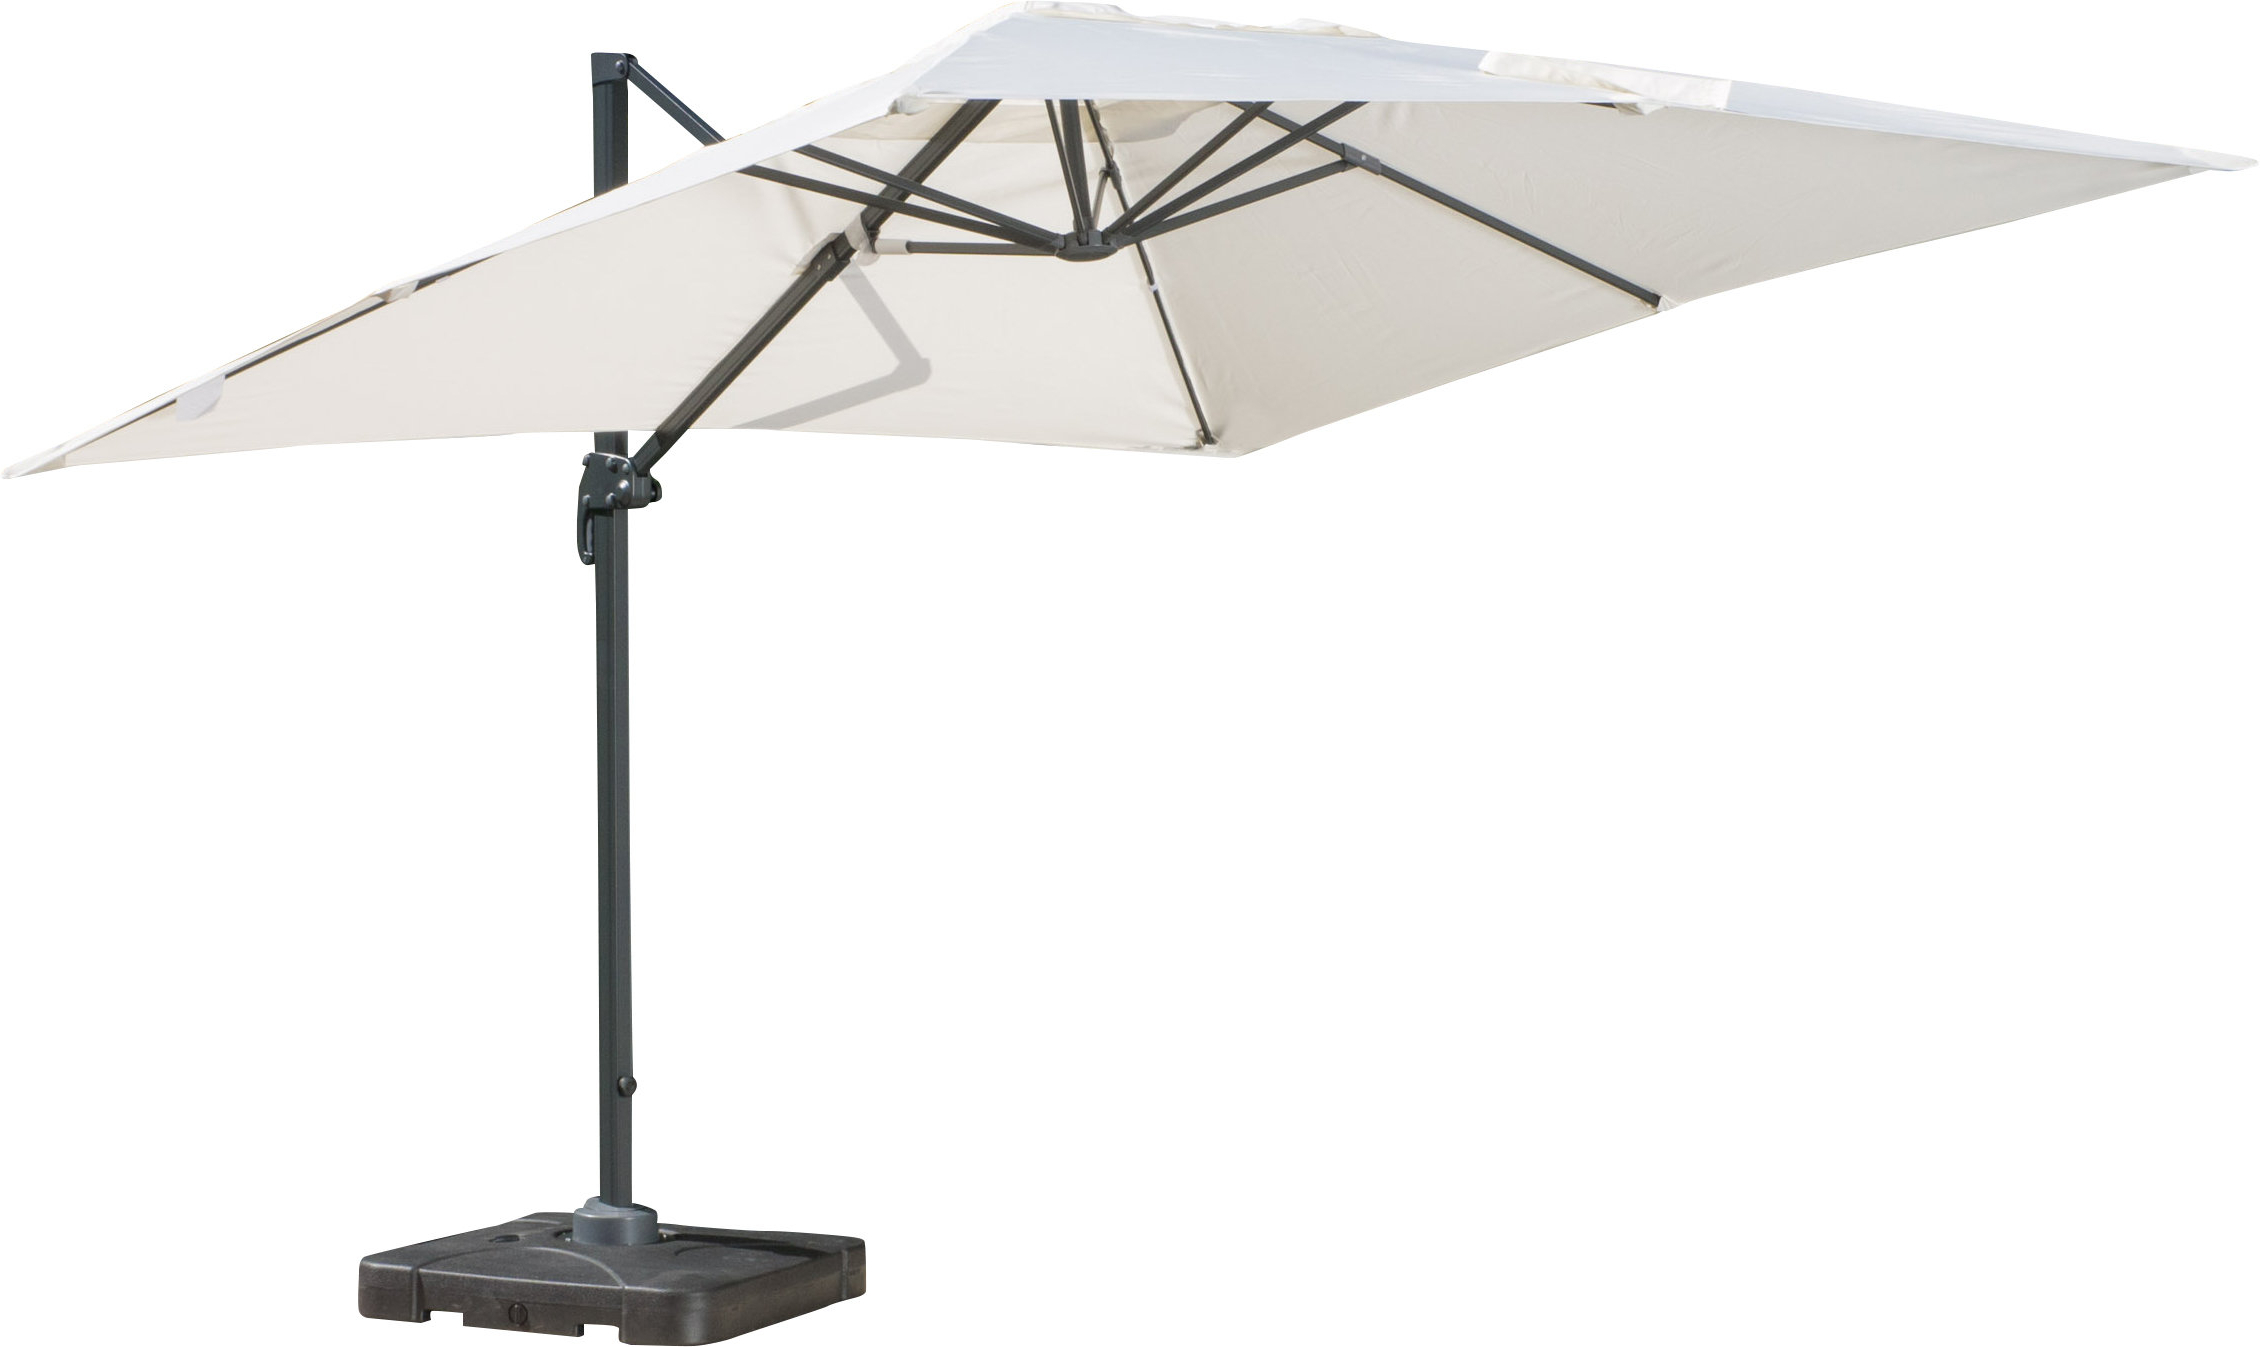 Boracay 10' Square Cantilever Umbrella Intended For Best And Newest Cora Square Cantilever Umbrellas (View 3 of 20)